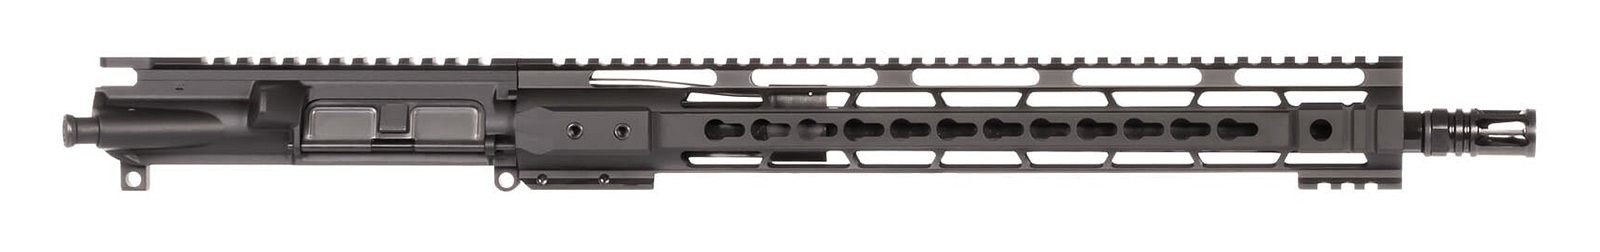 ar-15-upper-assembly-16-300-blackout-15-cbc-arms-keymod-ar-15-handguard-rail